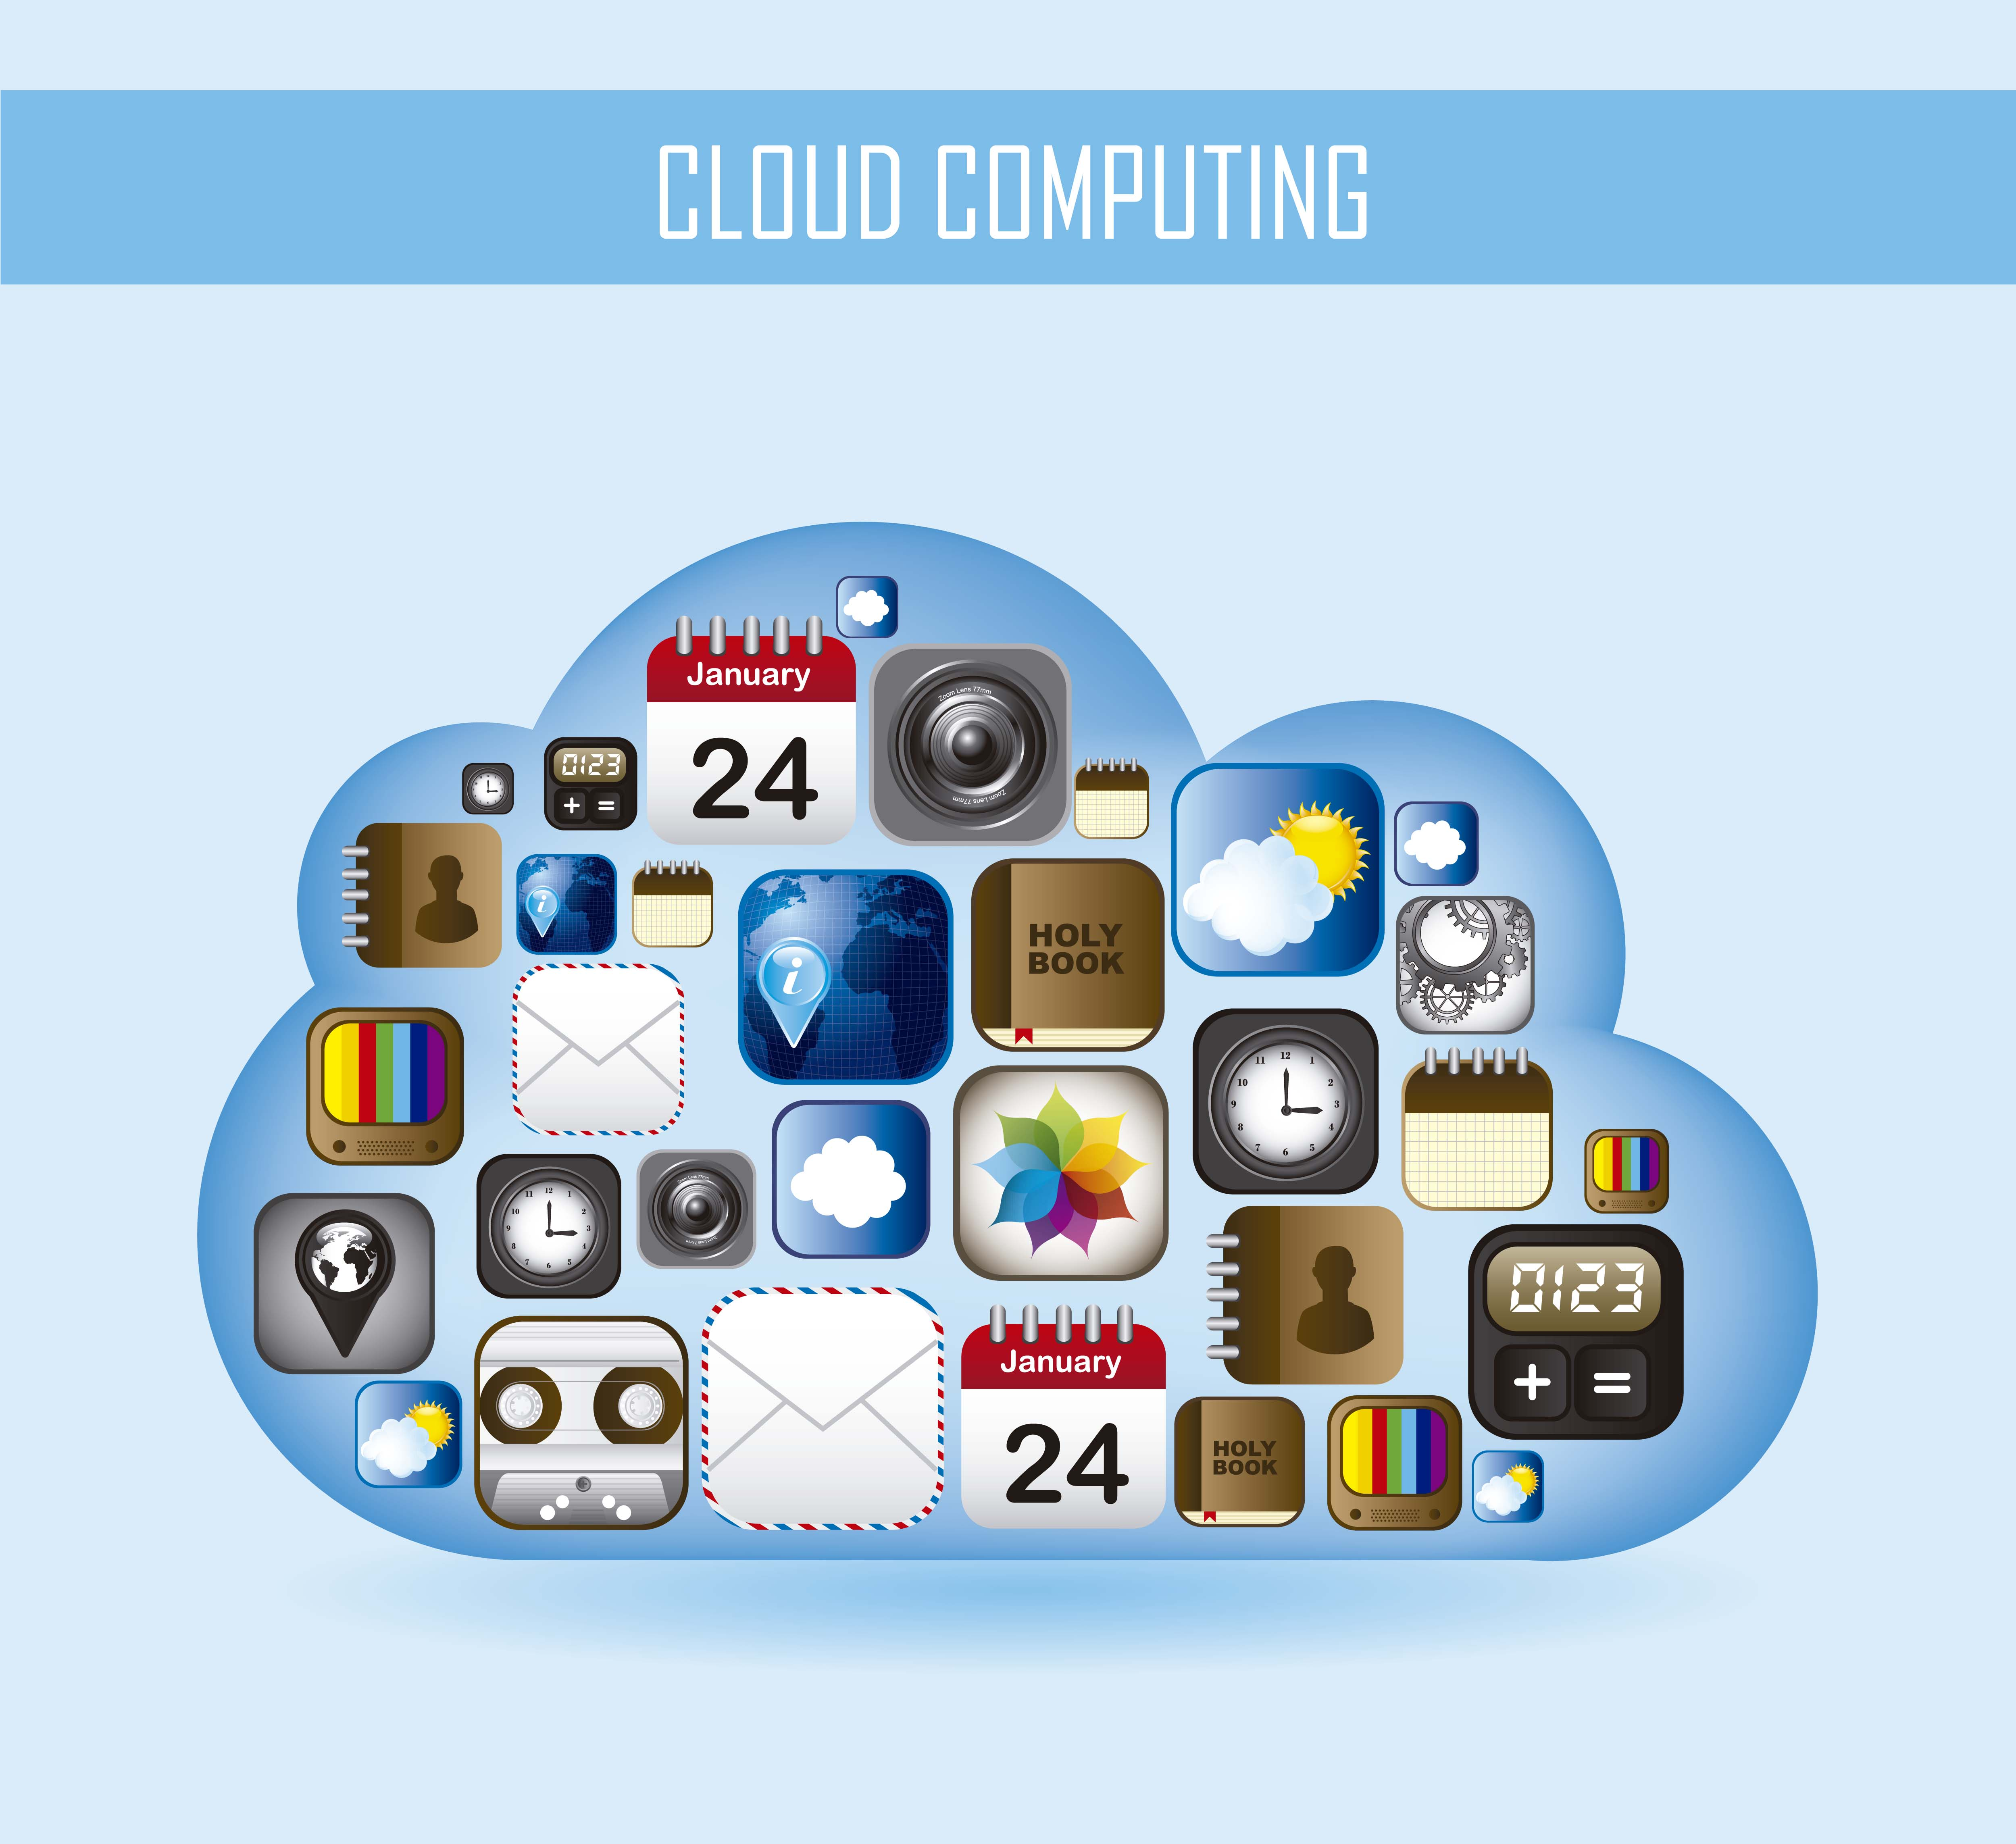 Outsource your Cloud requirements to theICEway today...